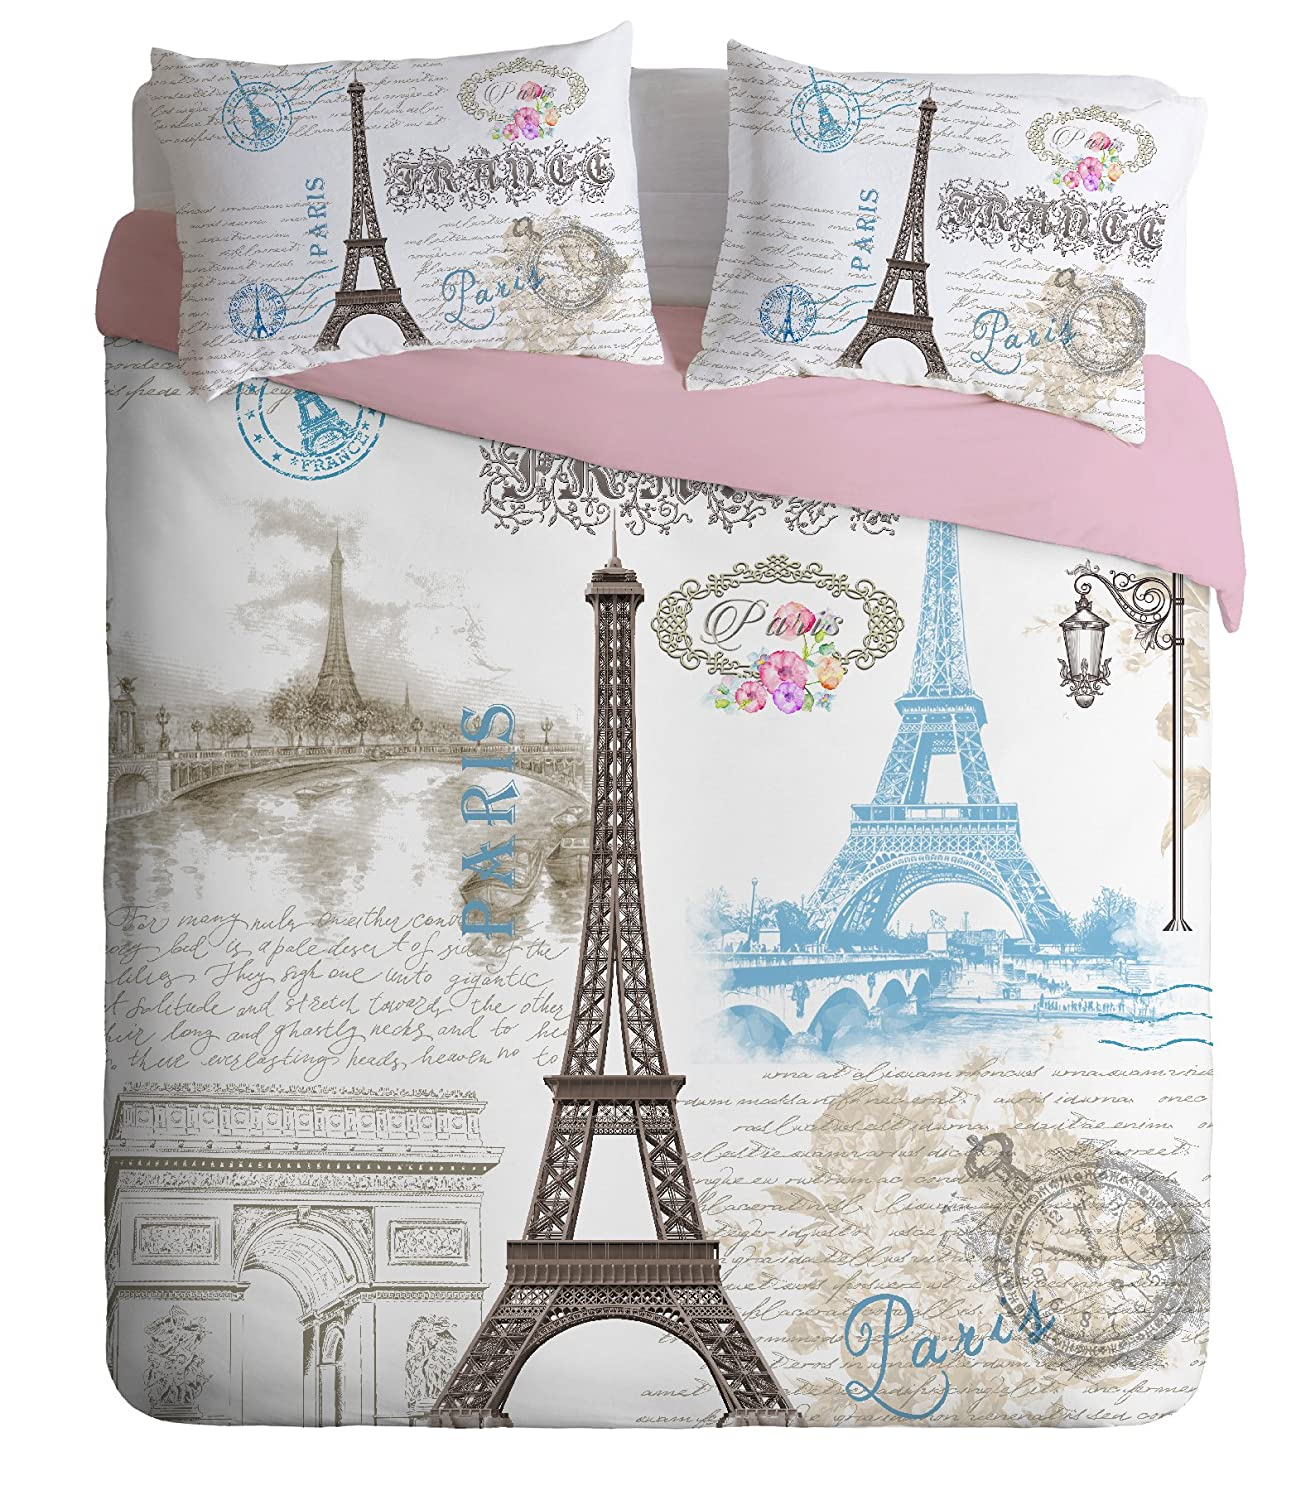 100% Turkish Cotton Paris Eiffel Tower Theme Themed Full Double Queen Size Duvet Cover Set Made in Turkey